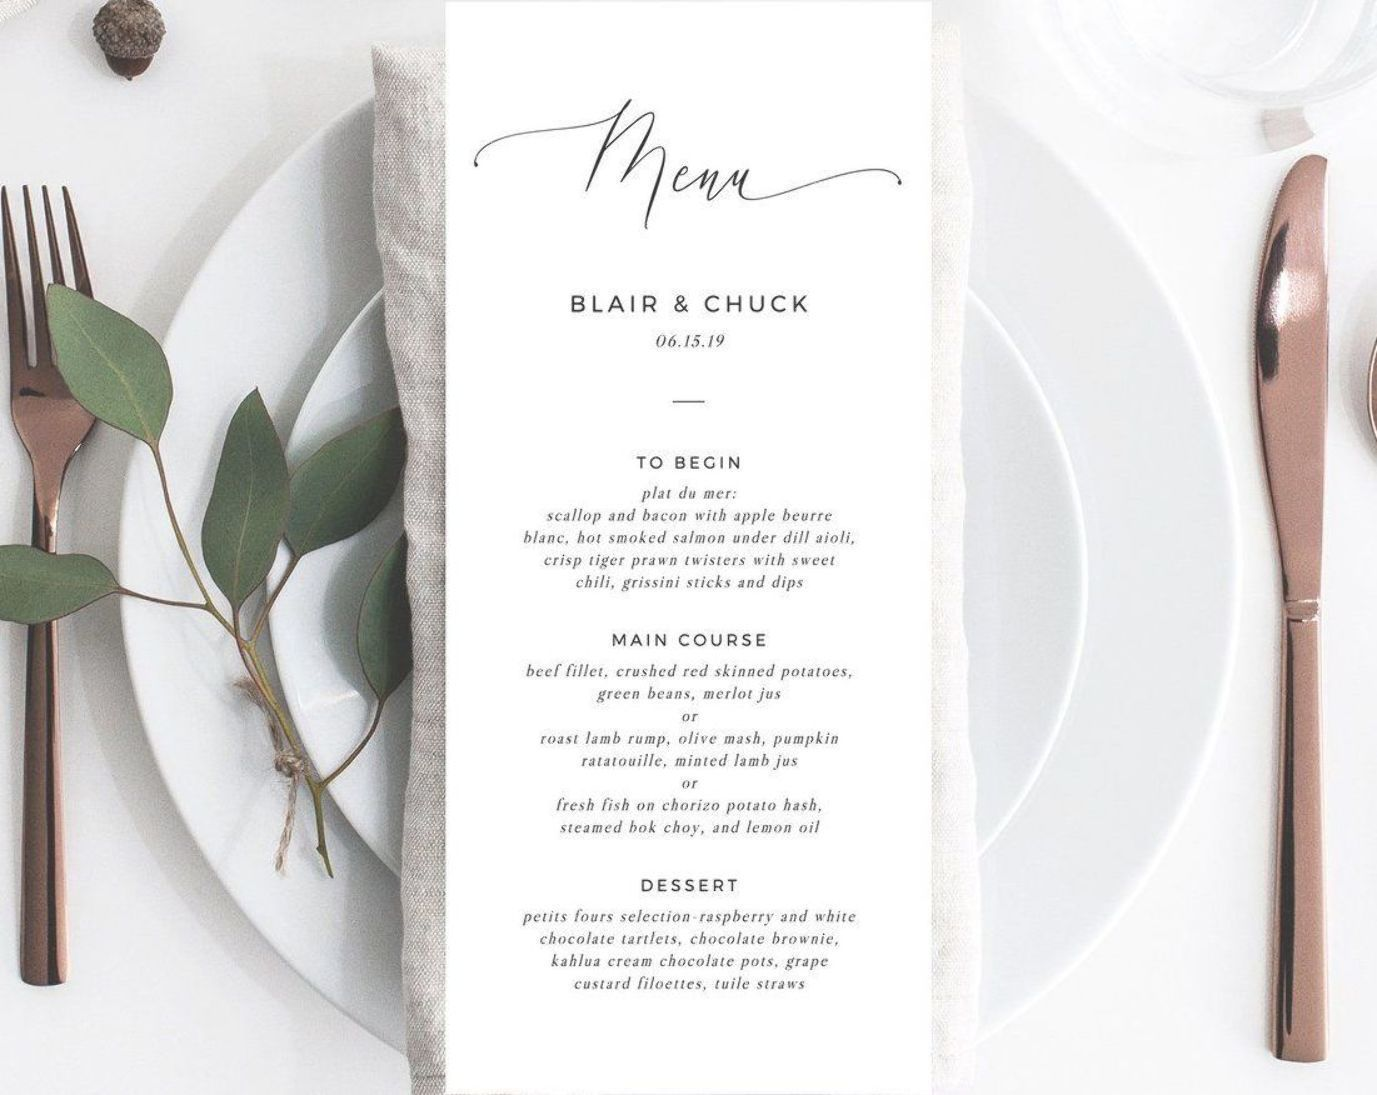 Wedding Menu Template, Printable Menu, Editable Wedding Menu, Modern Wedding Menu, DIY Wedding Menu, Templett, W15 #weddingmenutemplate Wedding Menu Template, Printable Menu, Editable Wedding Menu, Modern Wedding Menu, DIY Wedding Menu, Templett, W15 #weddingmenutemplate Wedding Menu Template, Printable Menu, Editable Wedding Menu, Modern Wedding Menu, DIY Wedding Menu, Templett, W15 #weddingmenutemplate Wedding Menu Template, Printable Menu, Editable Wedding Menu, Modern Wedding Menu, DIY Weddi #weddingmenutemplate